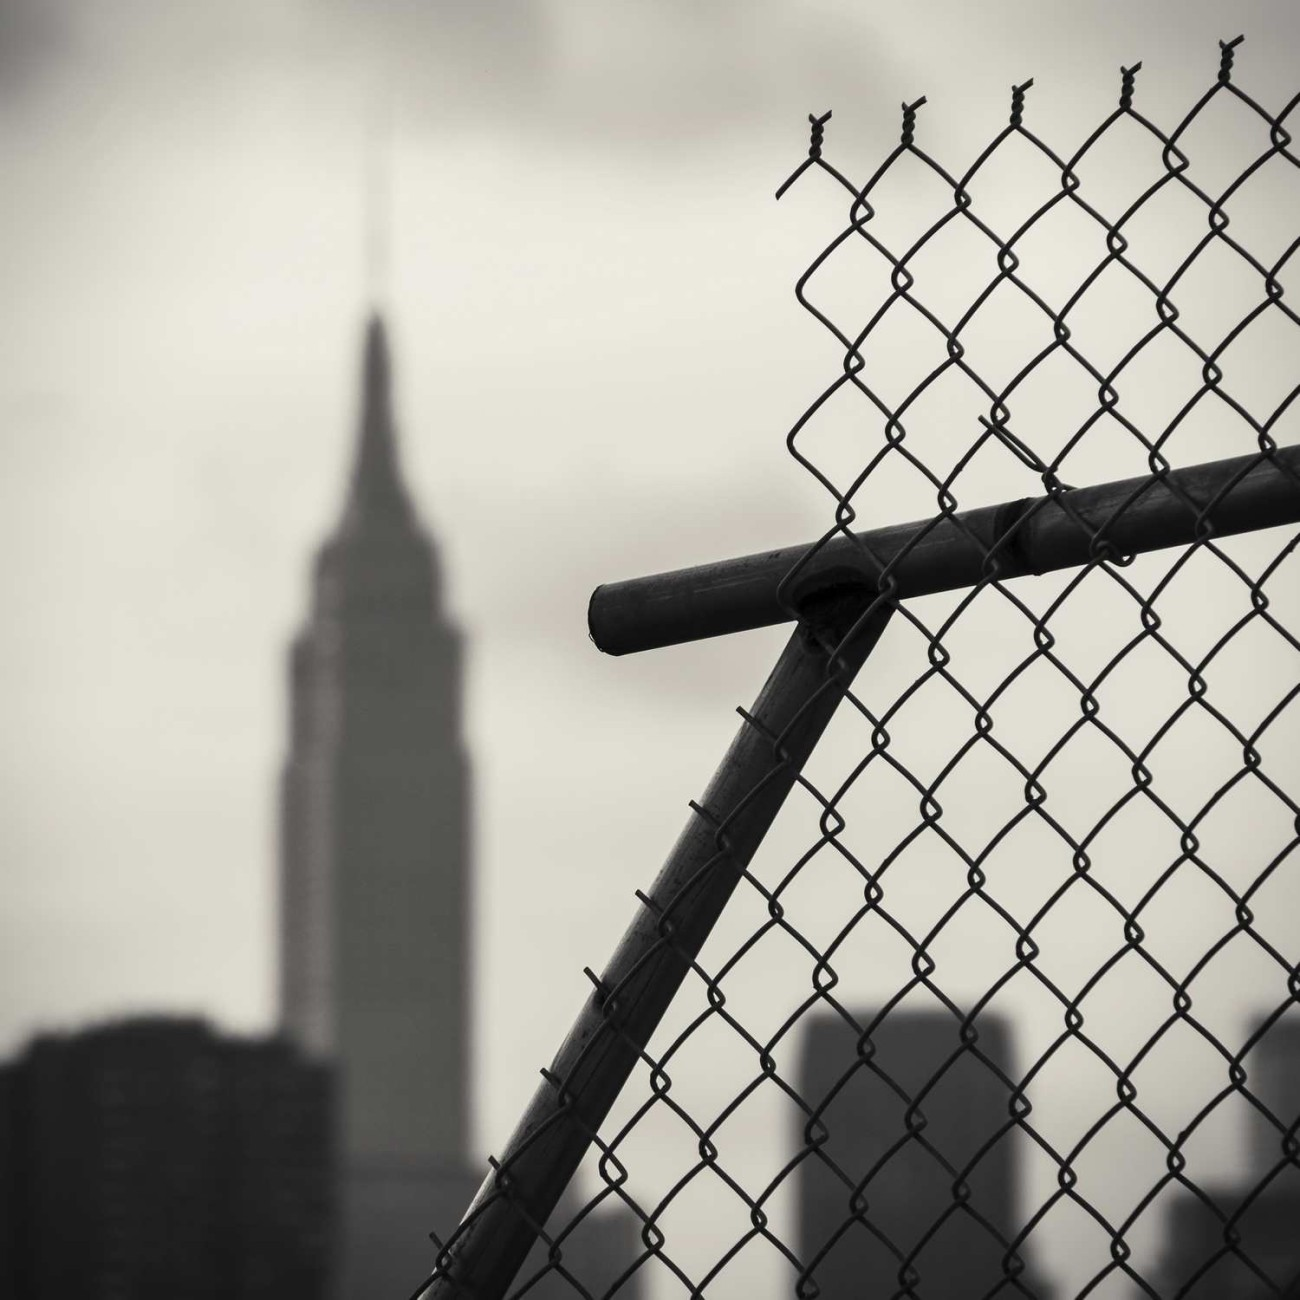 Chain fence and Empire State Building, Brooklyn, NY 2014